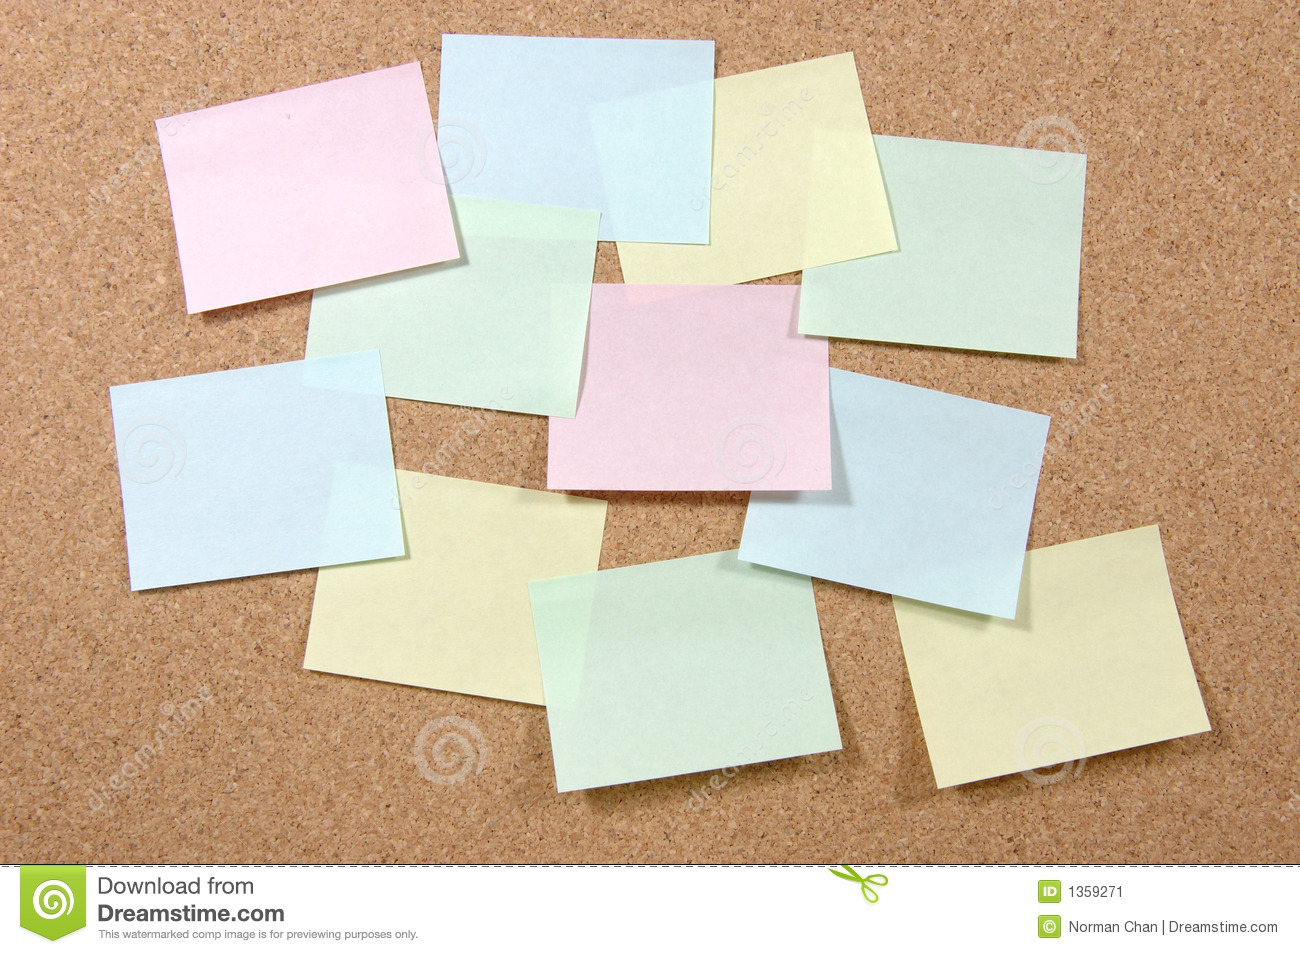 Notas de post-it coloridas